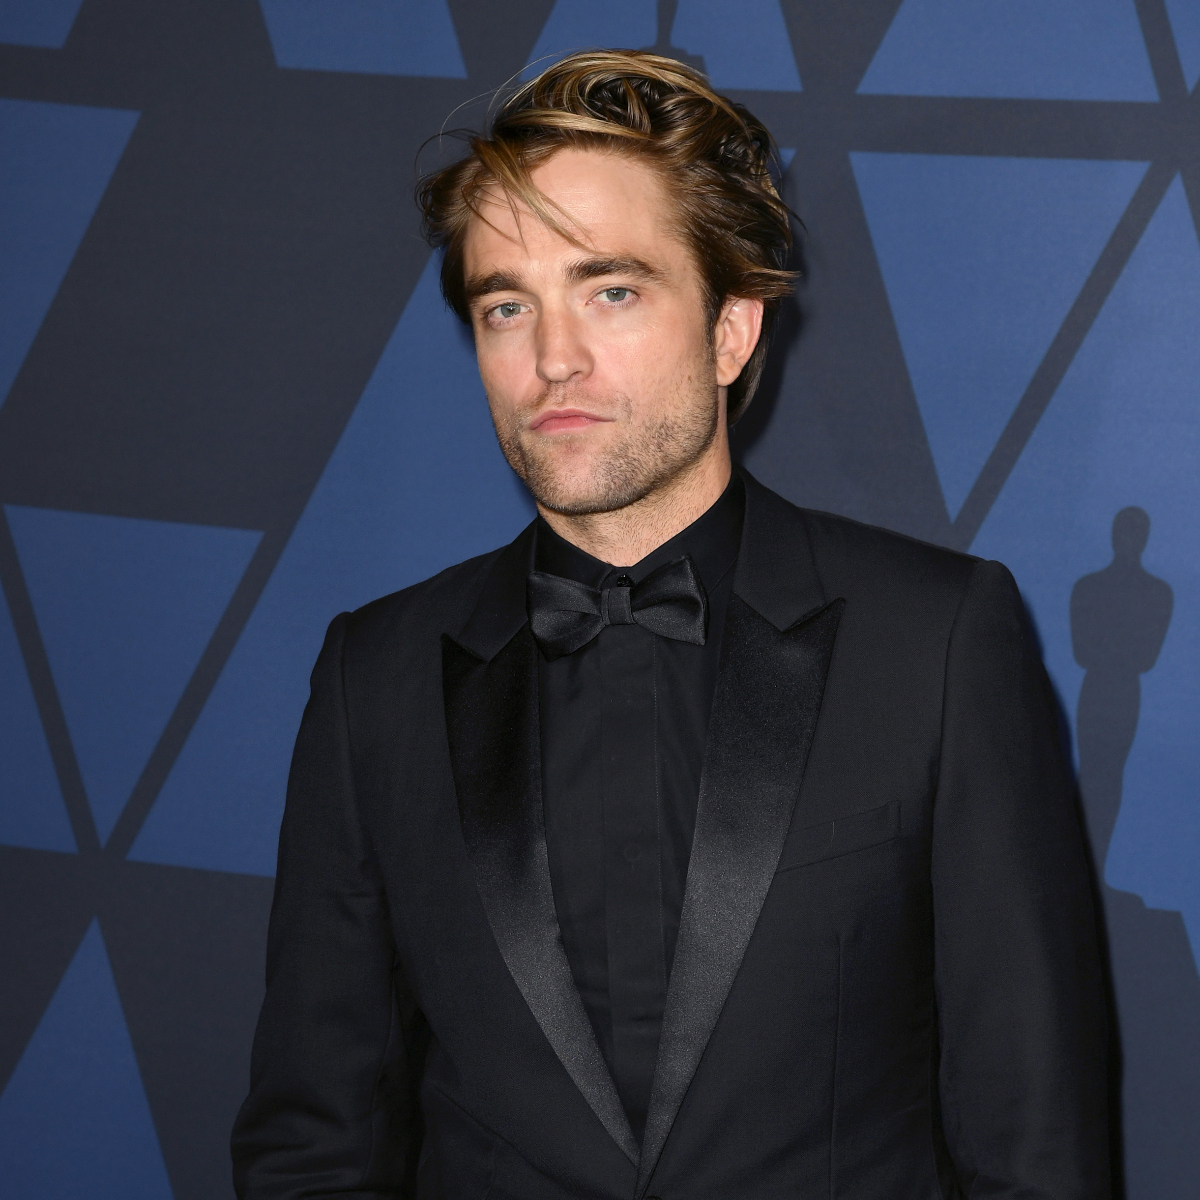 Robert Pattinson's film The Batman to resume shooting in the UK ...